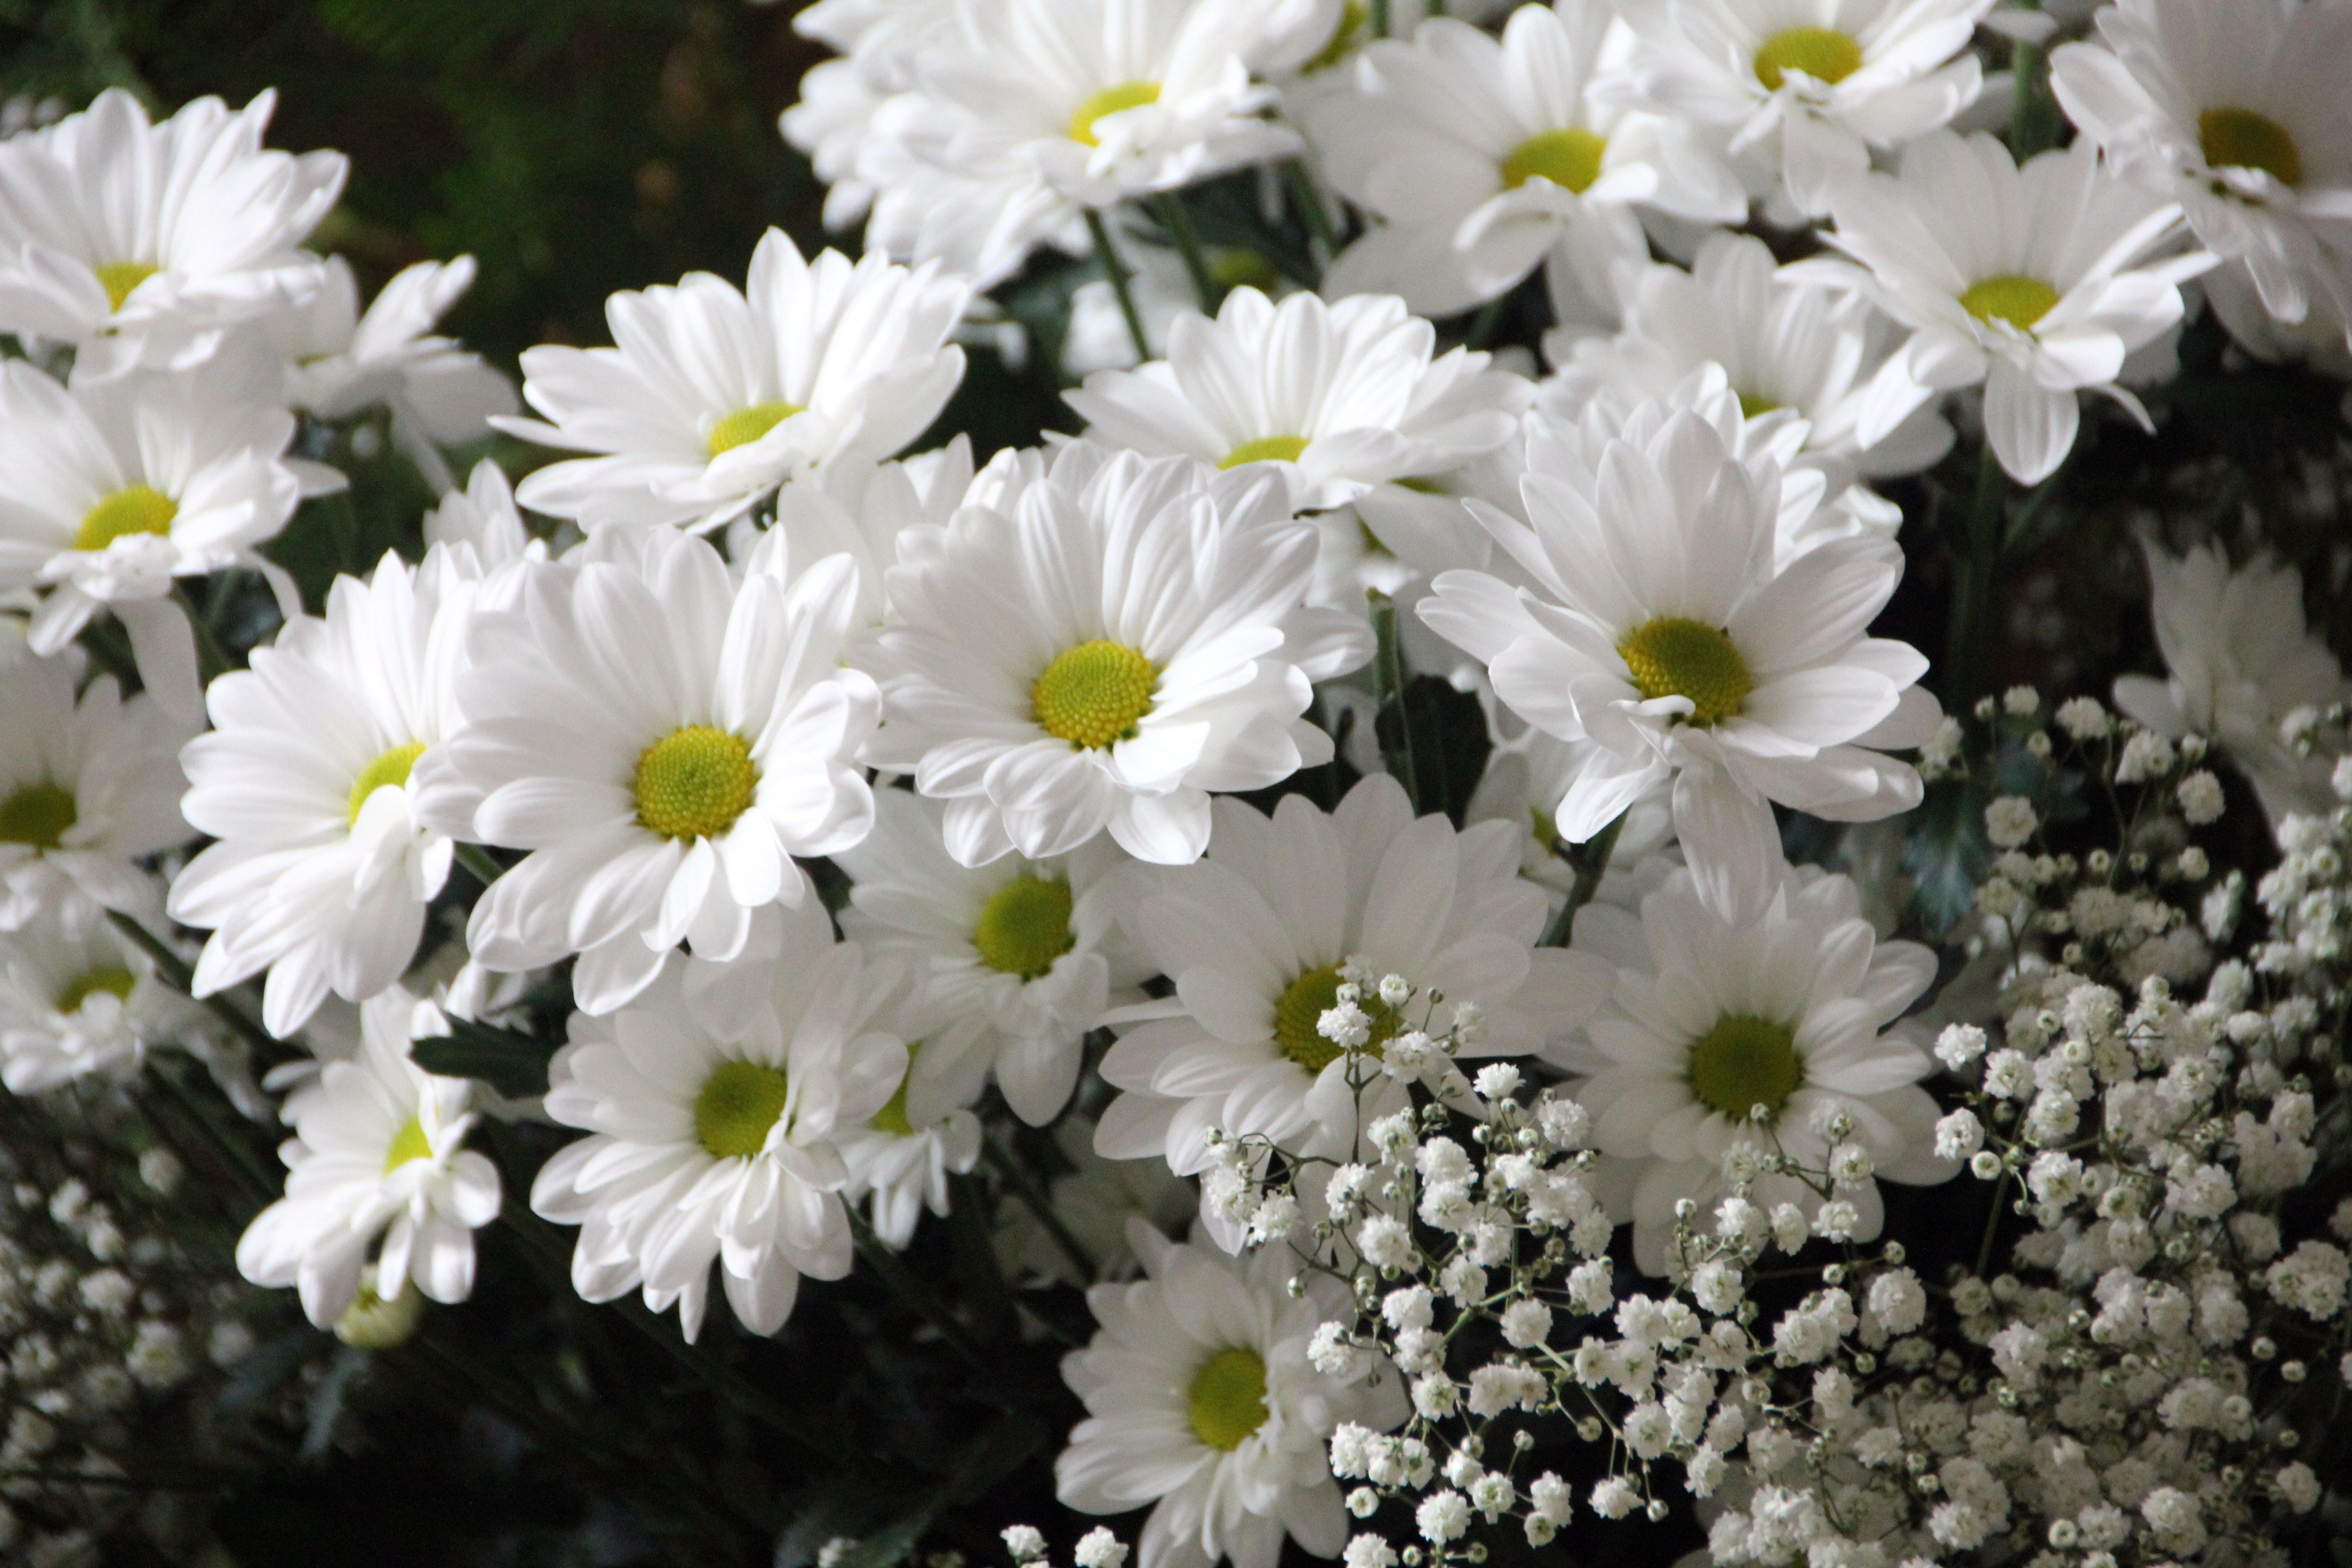 White Daisy Flowers White Baby's-Breath Flowers